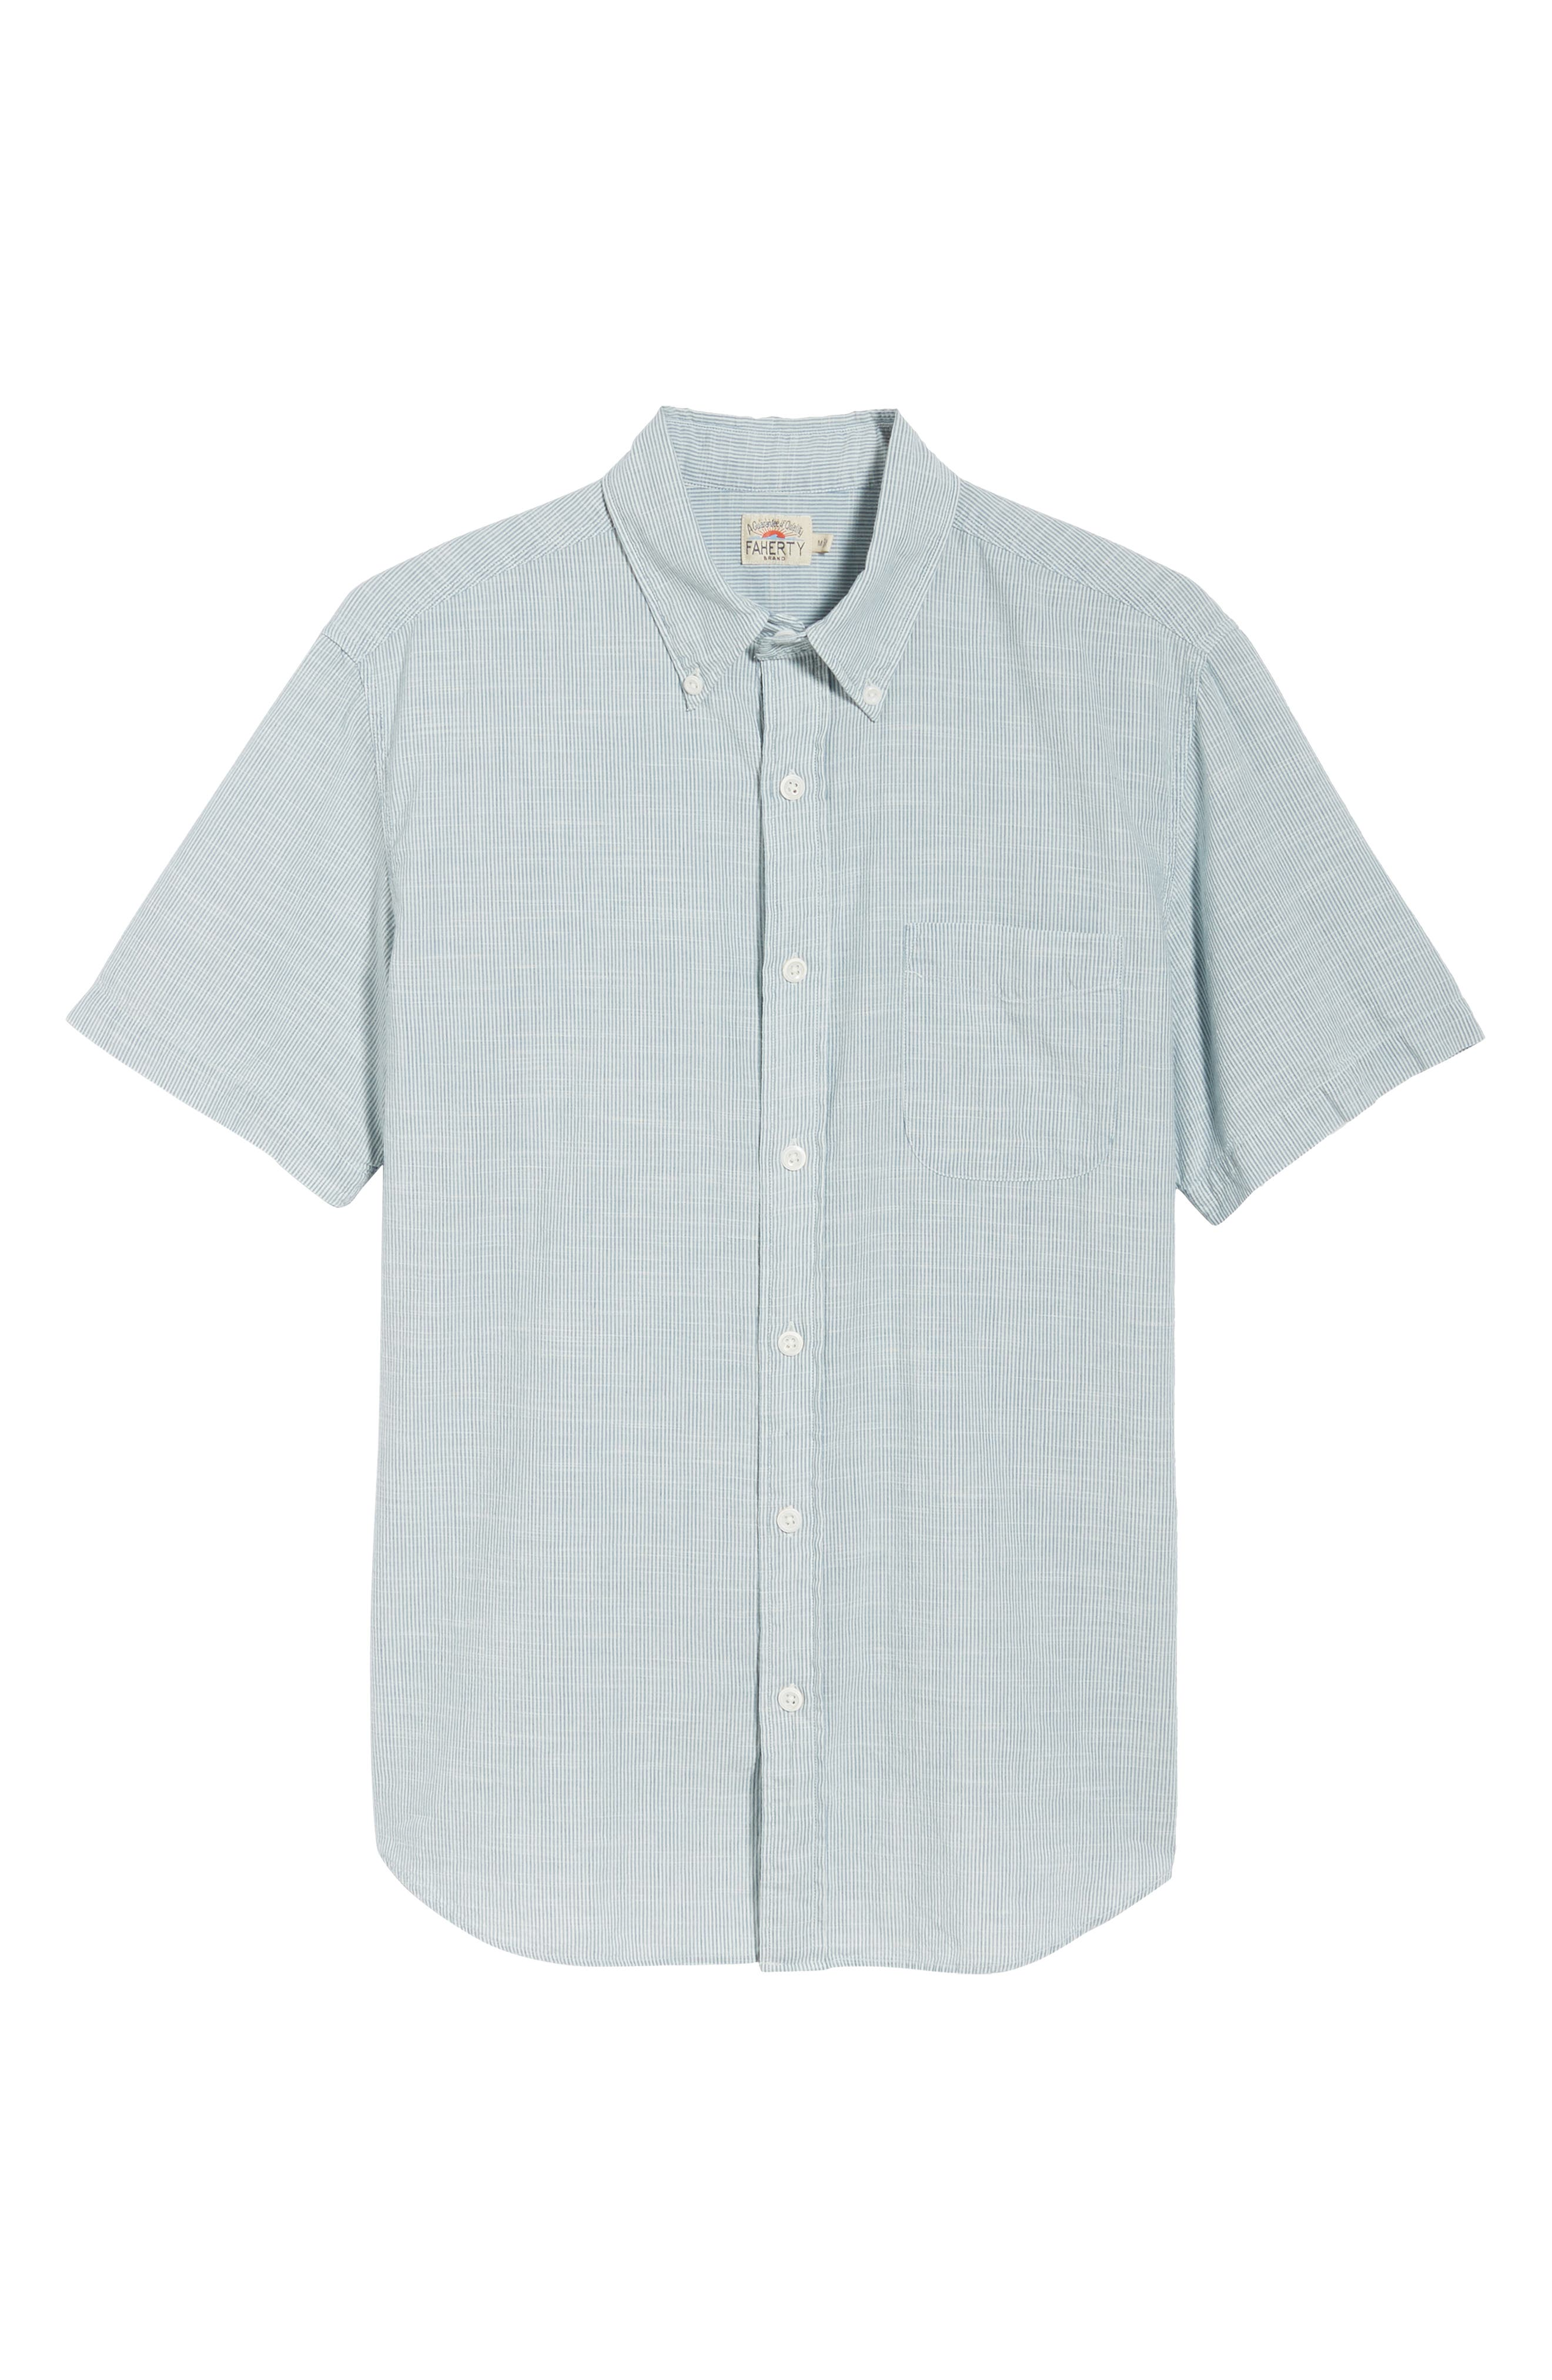 Pacific Pinstripe Sport Shirt,                             Alternate thumbnail 6, color,                             100